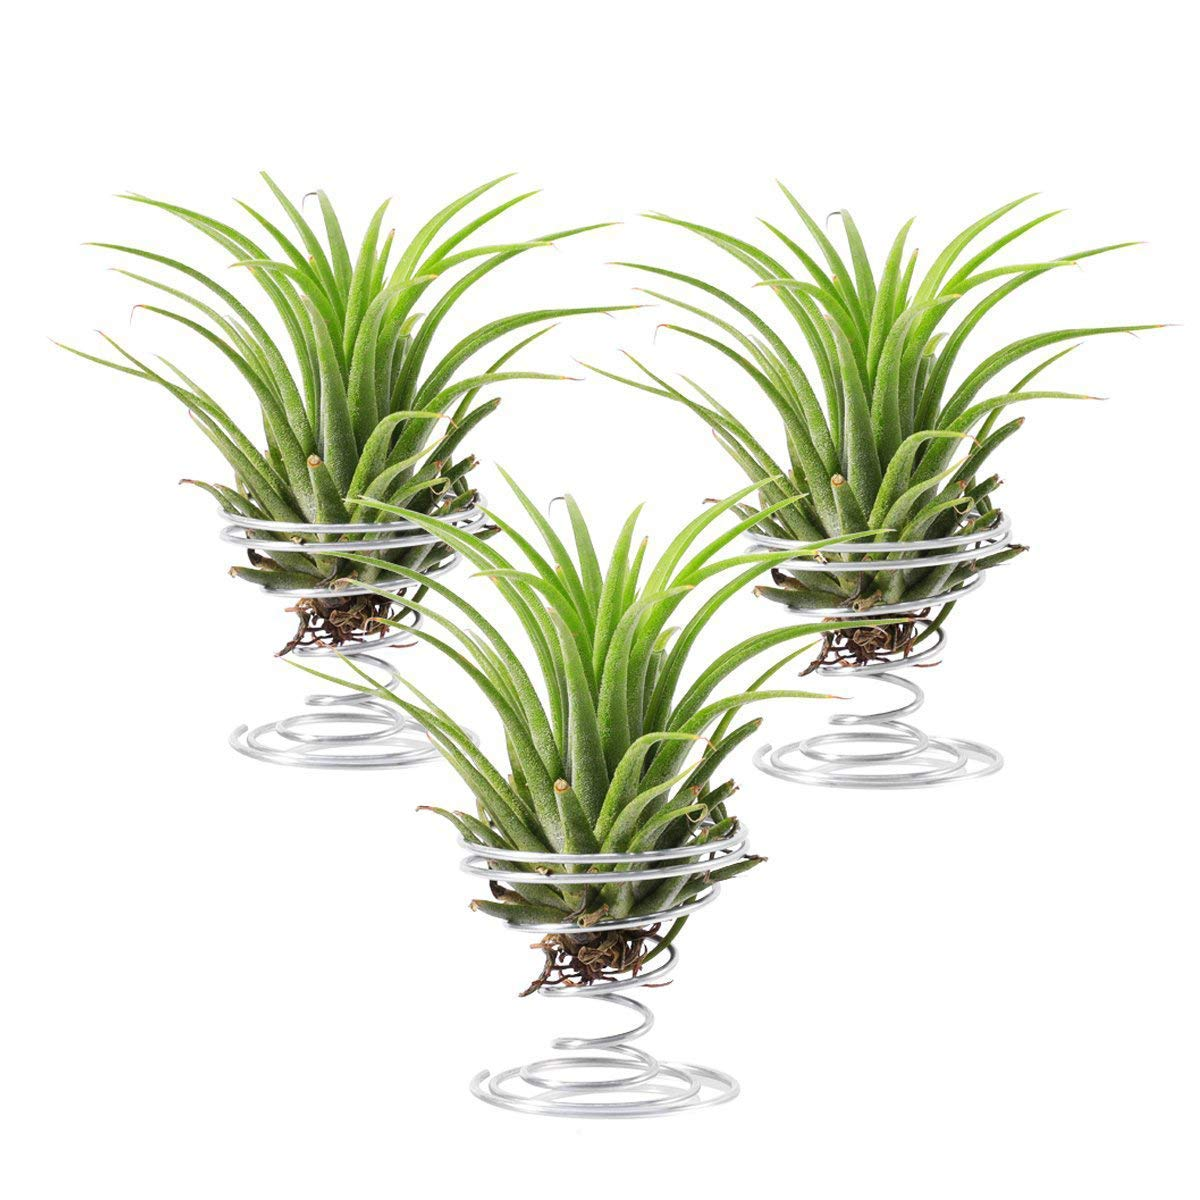 Air Plant Holder,3 Pack Stainless Steel Air Plant Holder Container Tabletop Stand Vase Pot for Hanging Air Plant Small Tillandsia Mini Cactus Faux Plants Indoor Wall Home Decor